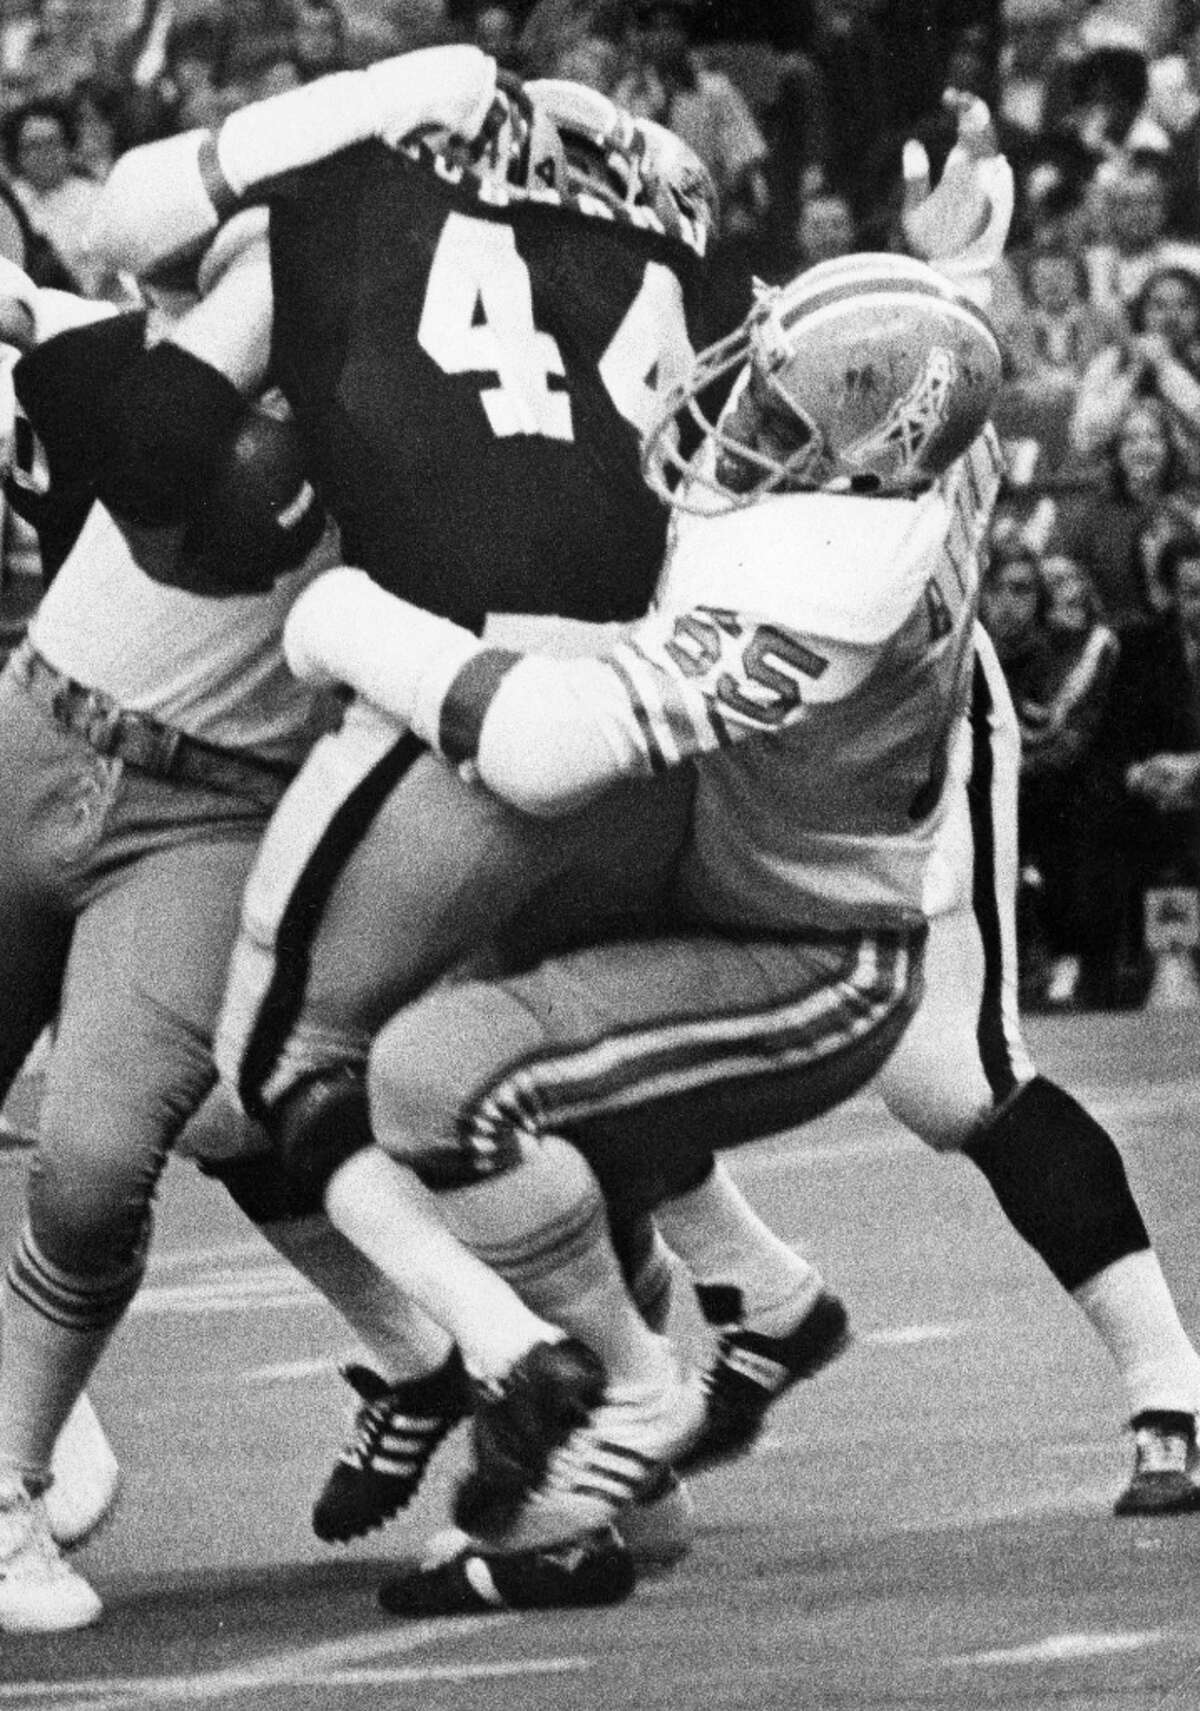 Elvin Bethea (65) Defensive End Time with the Oilers: 1968-1983 Year of HOF induction: 2003 His career high of 16 sacks in the 1973 season is still a franchise record with the Tennessee Titans.